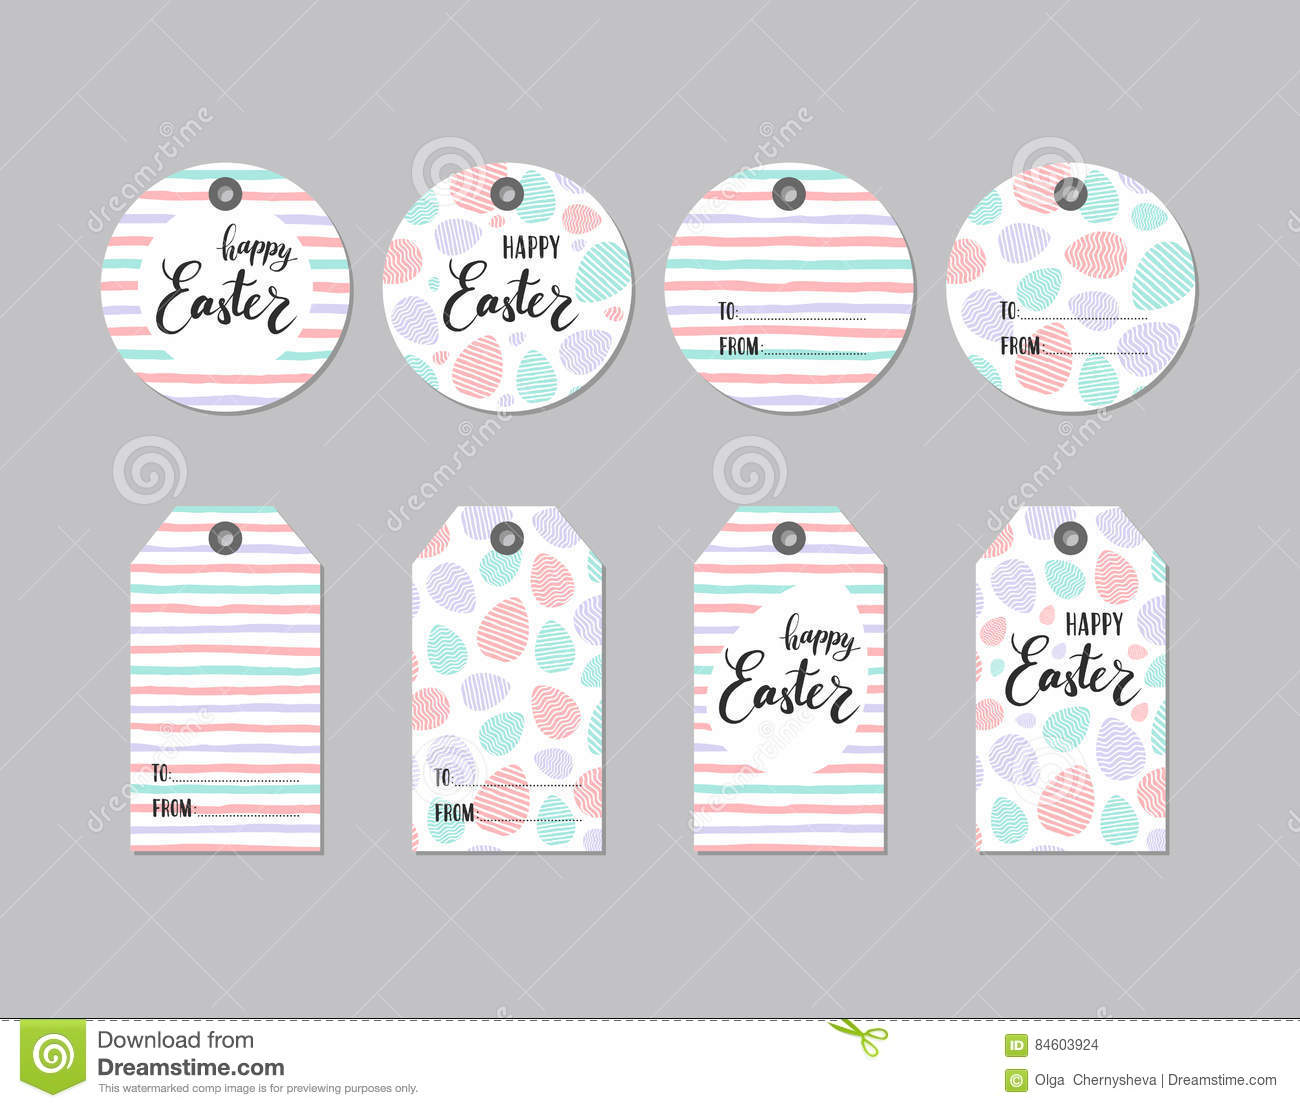 Collection of cute gift tag happy easter stock vector image collection of cute gift tag happy easter negle Gallery